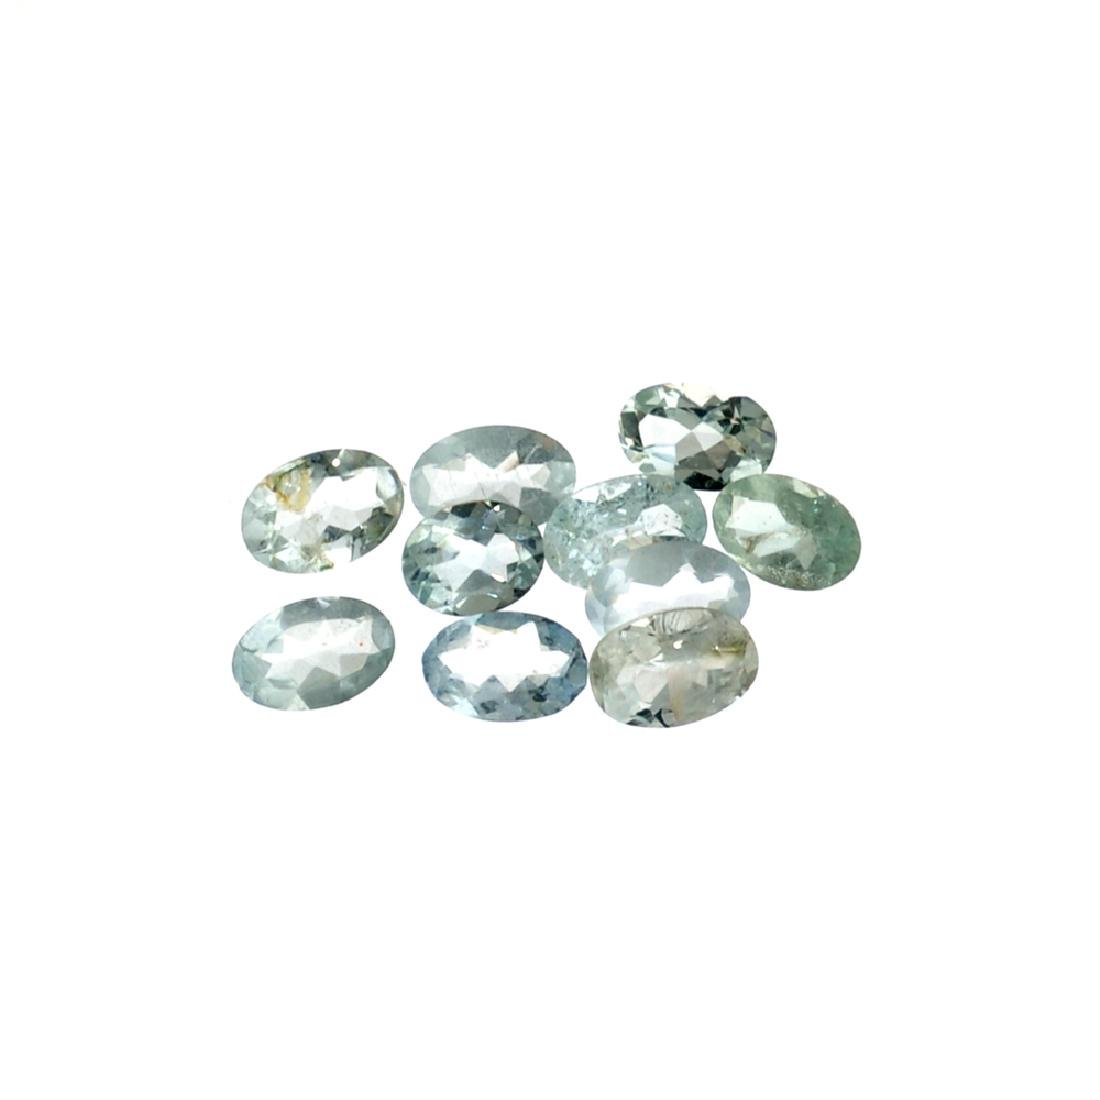 APP: 1.1k 3.74CT Oval Cut Aquamarine Parcel